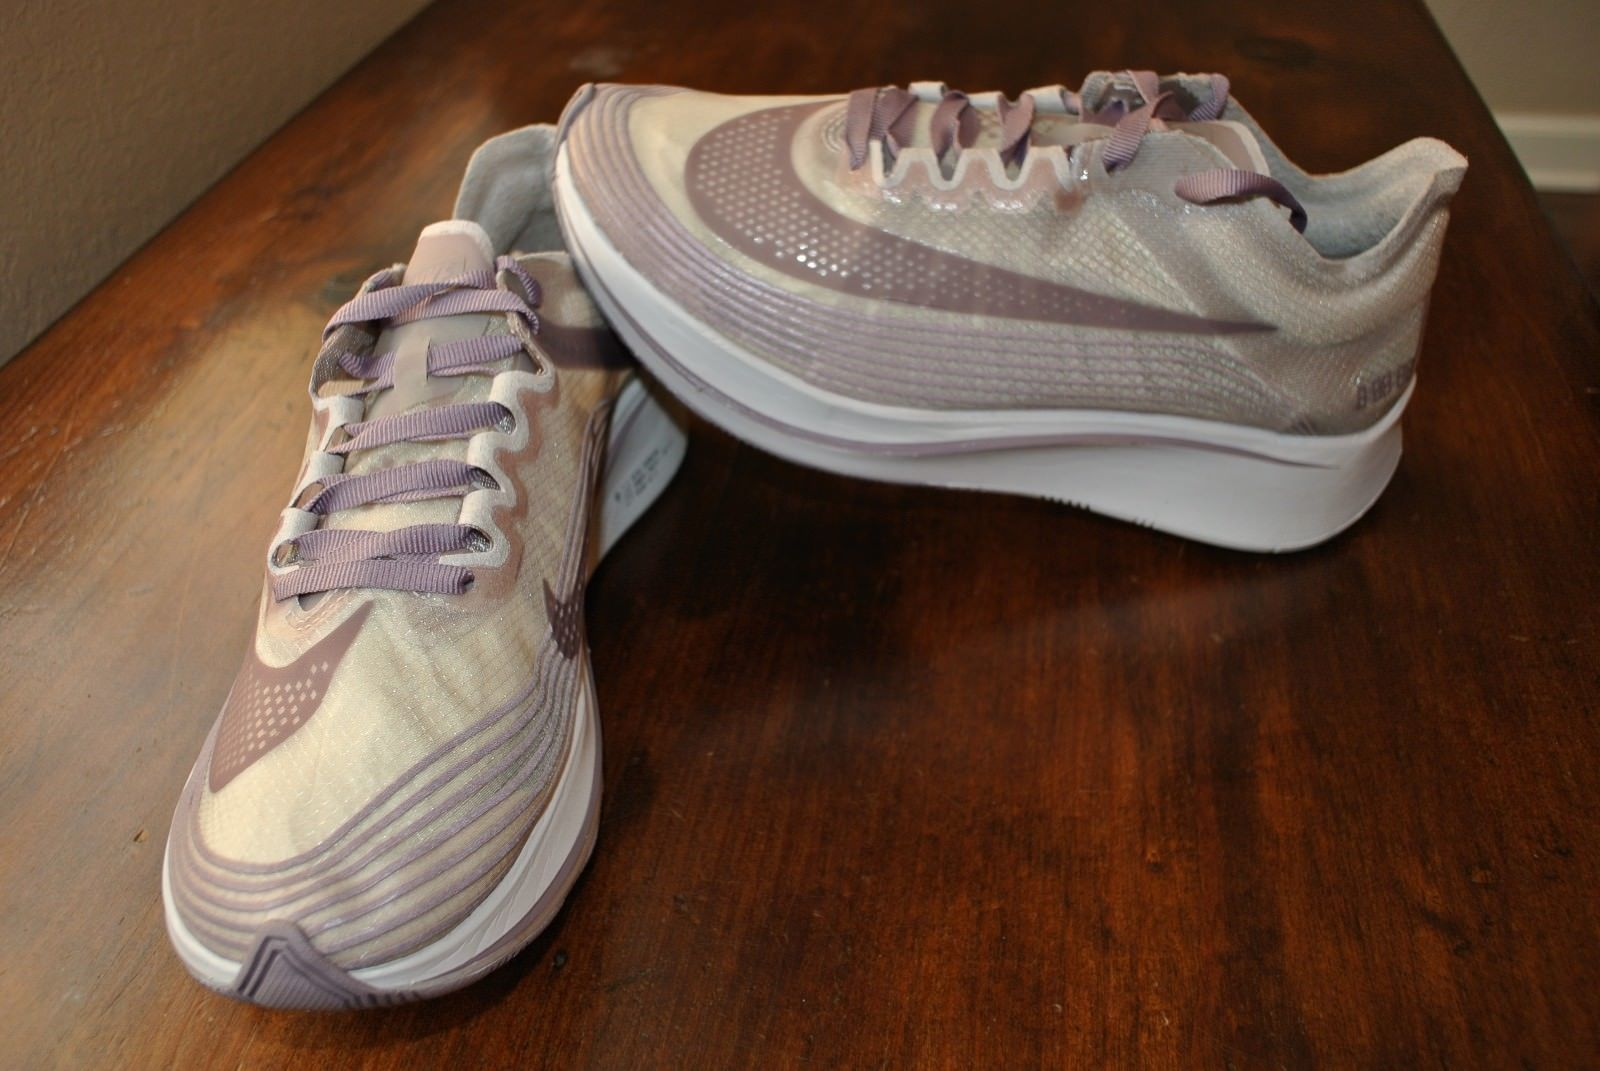 845c8329ecf76d NIKE NikeLab ZOOM FLY SP CHICAGO MARATHON TAUPE GREY AA3172 200 US MENS SZ 5